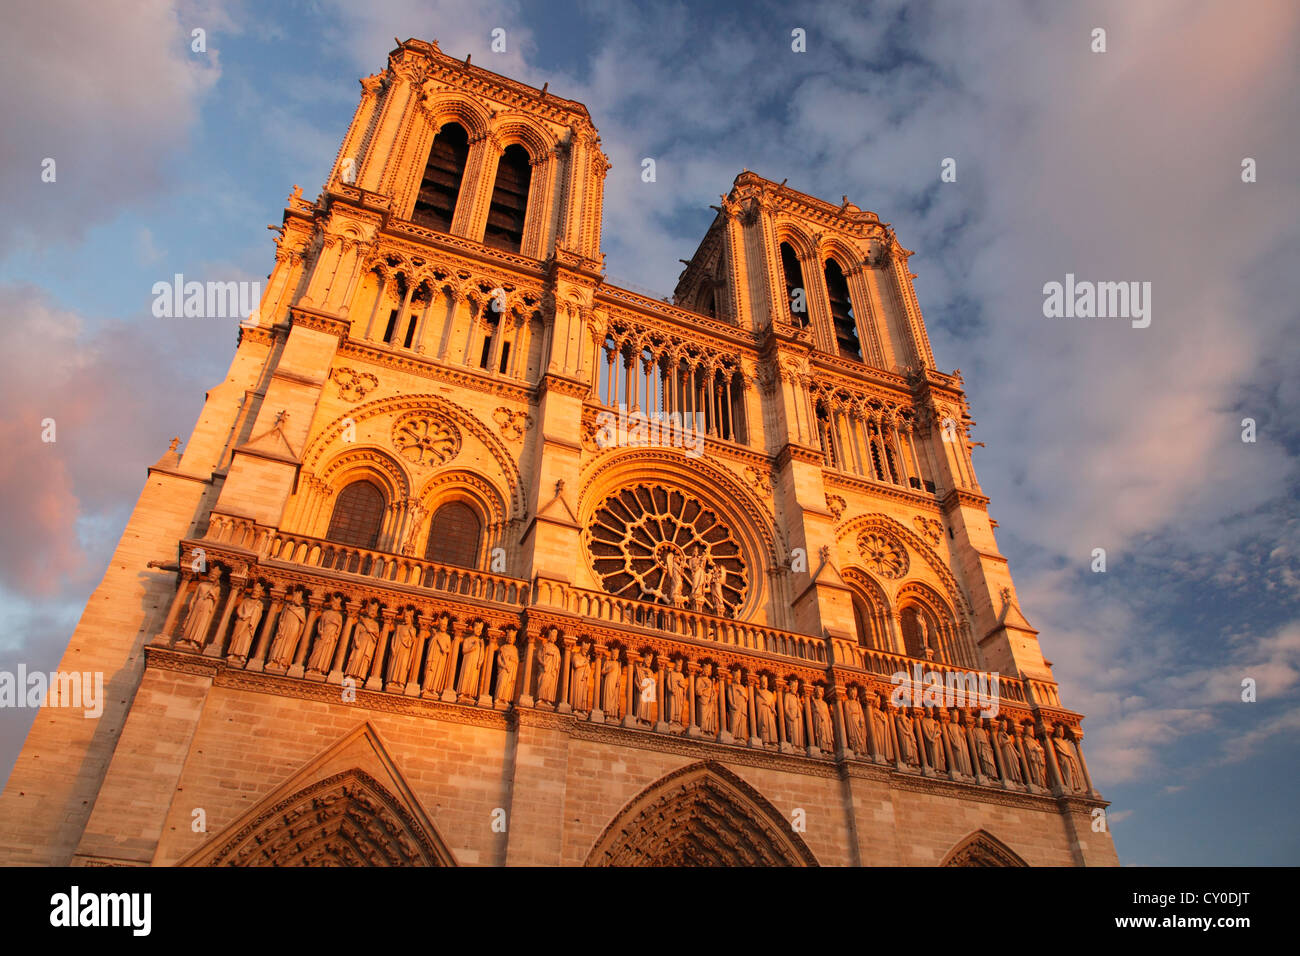 Notre Dame de Paris in sunset light; La cathédrale Notre-Dame de Paris Stock Photo